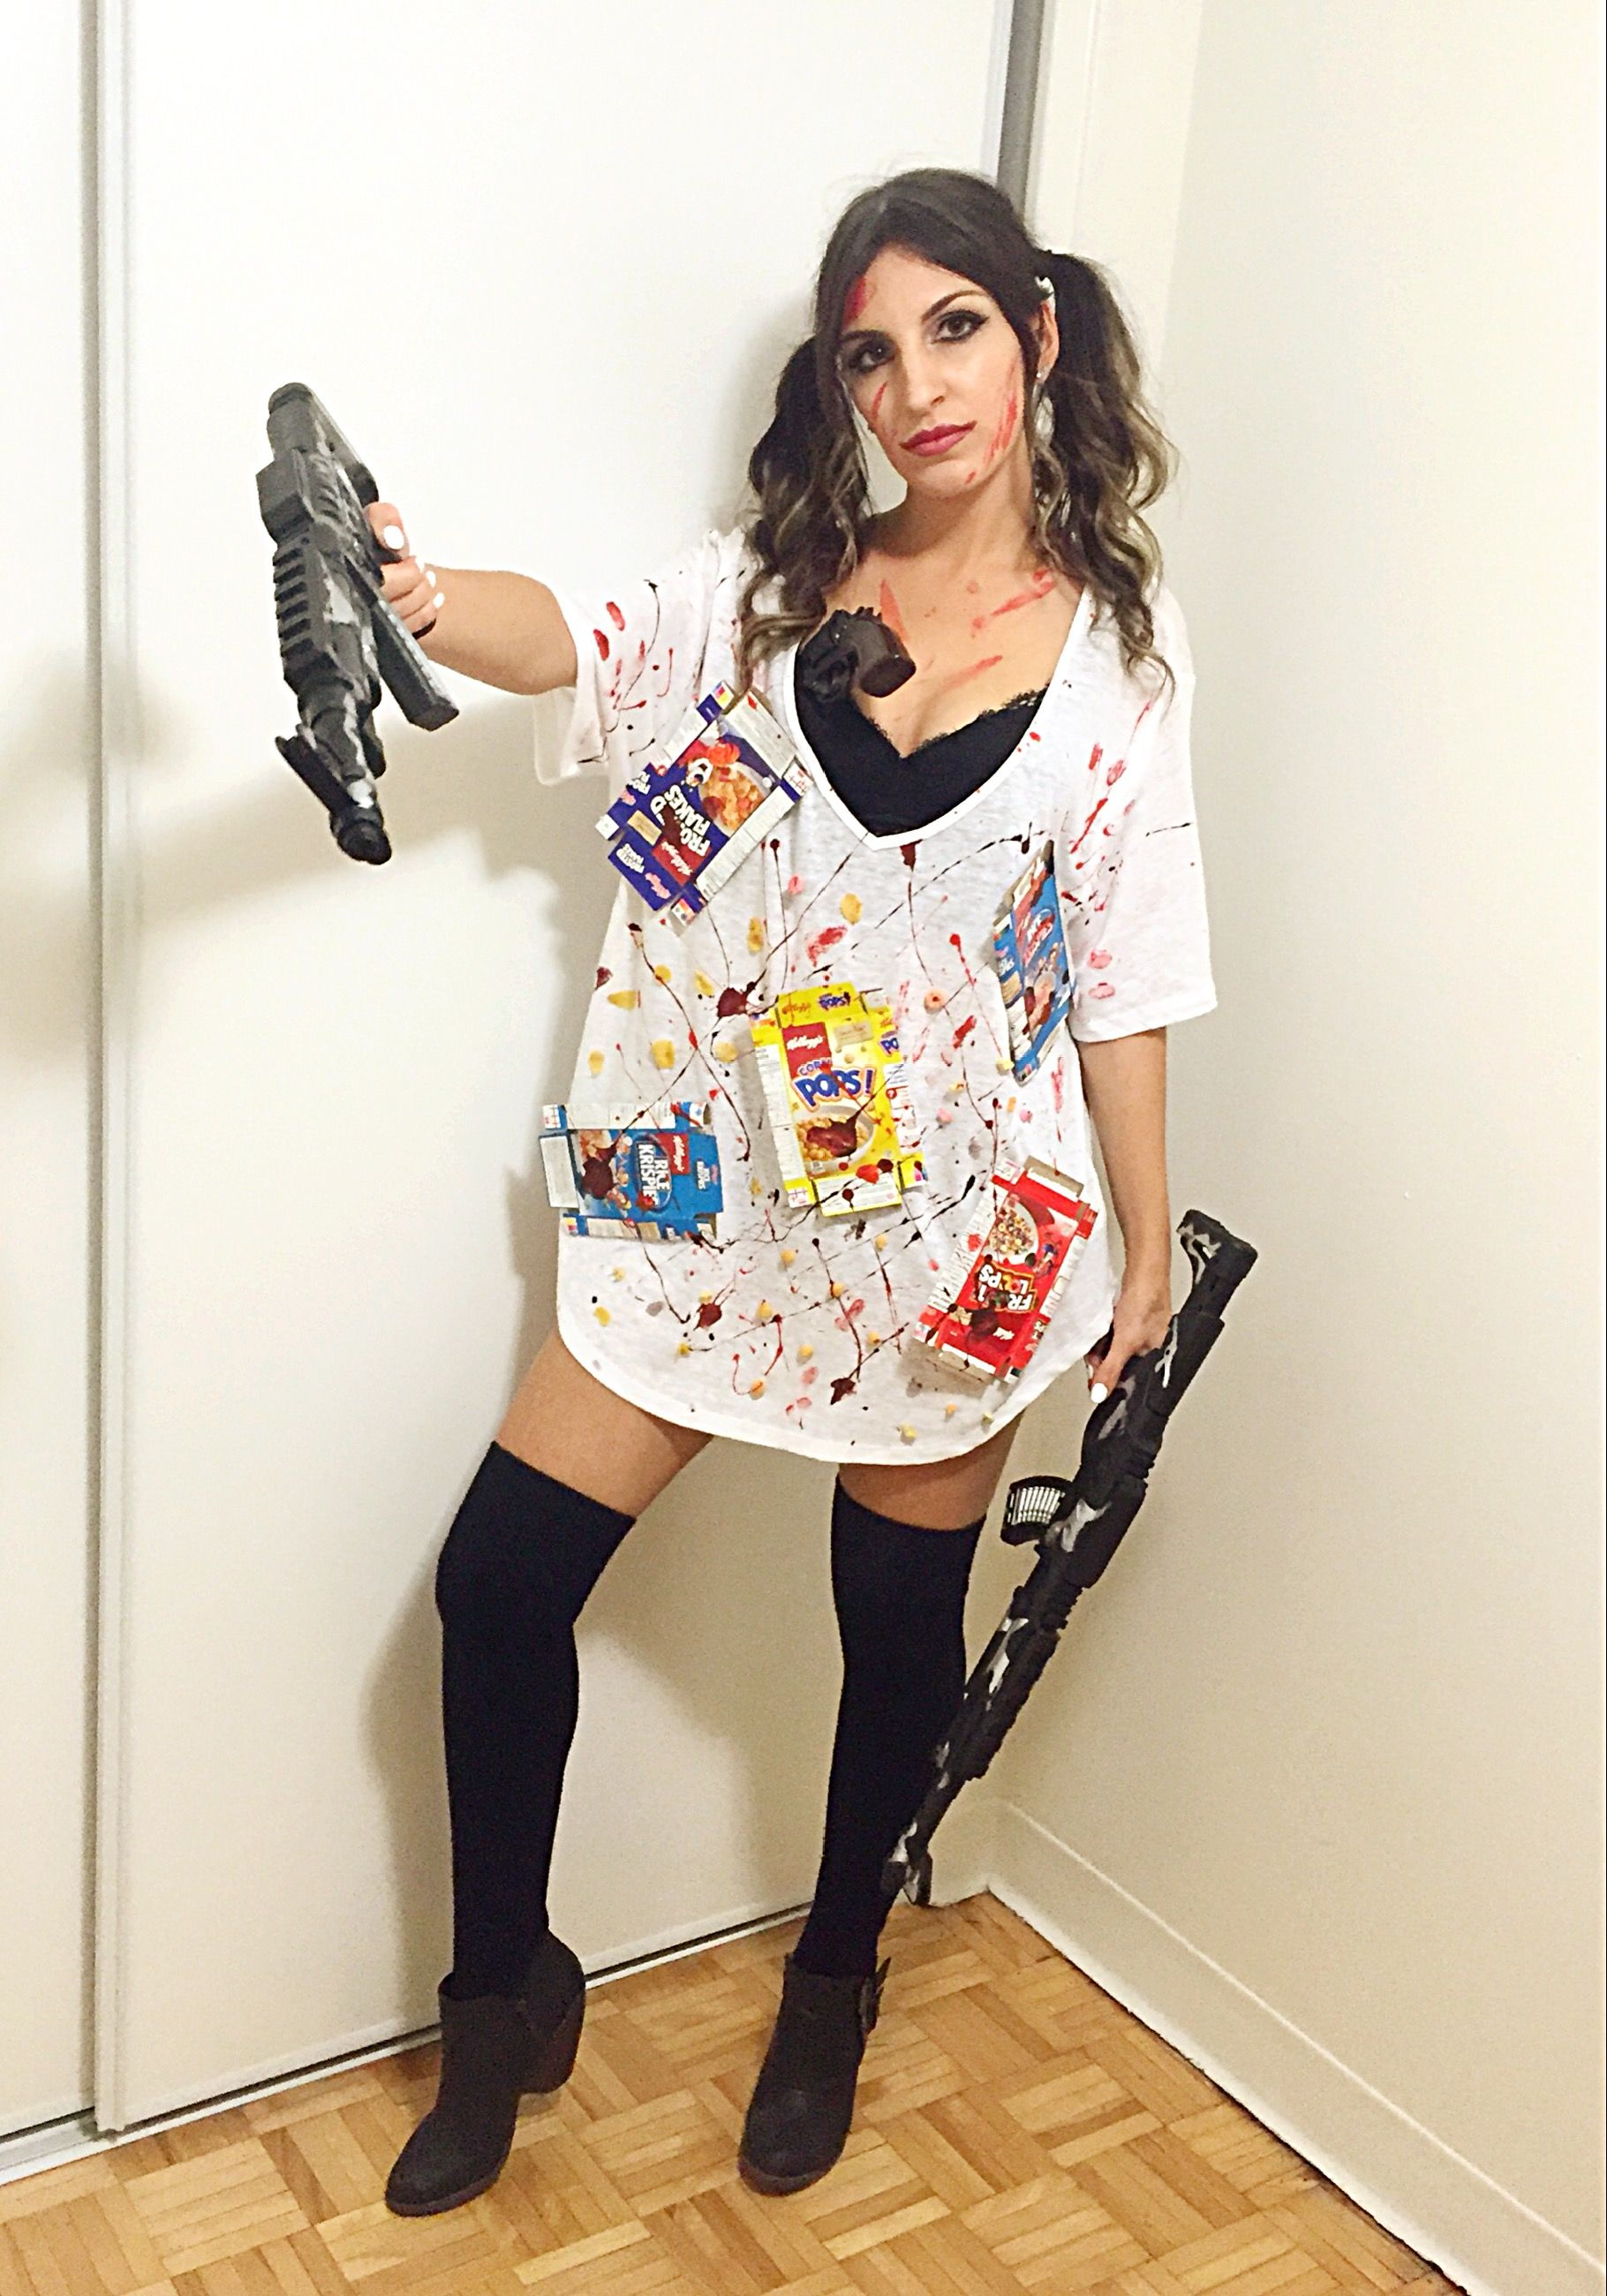 Cereal Killer costume | Adorable Costumes | Pinterest ...